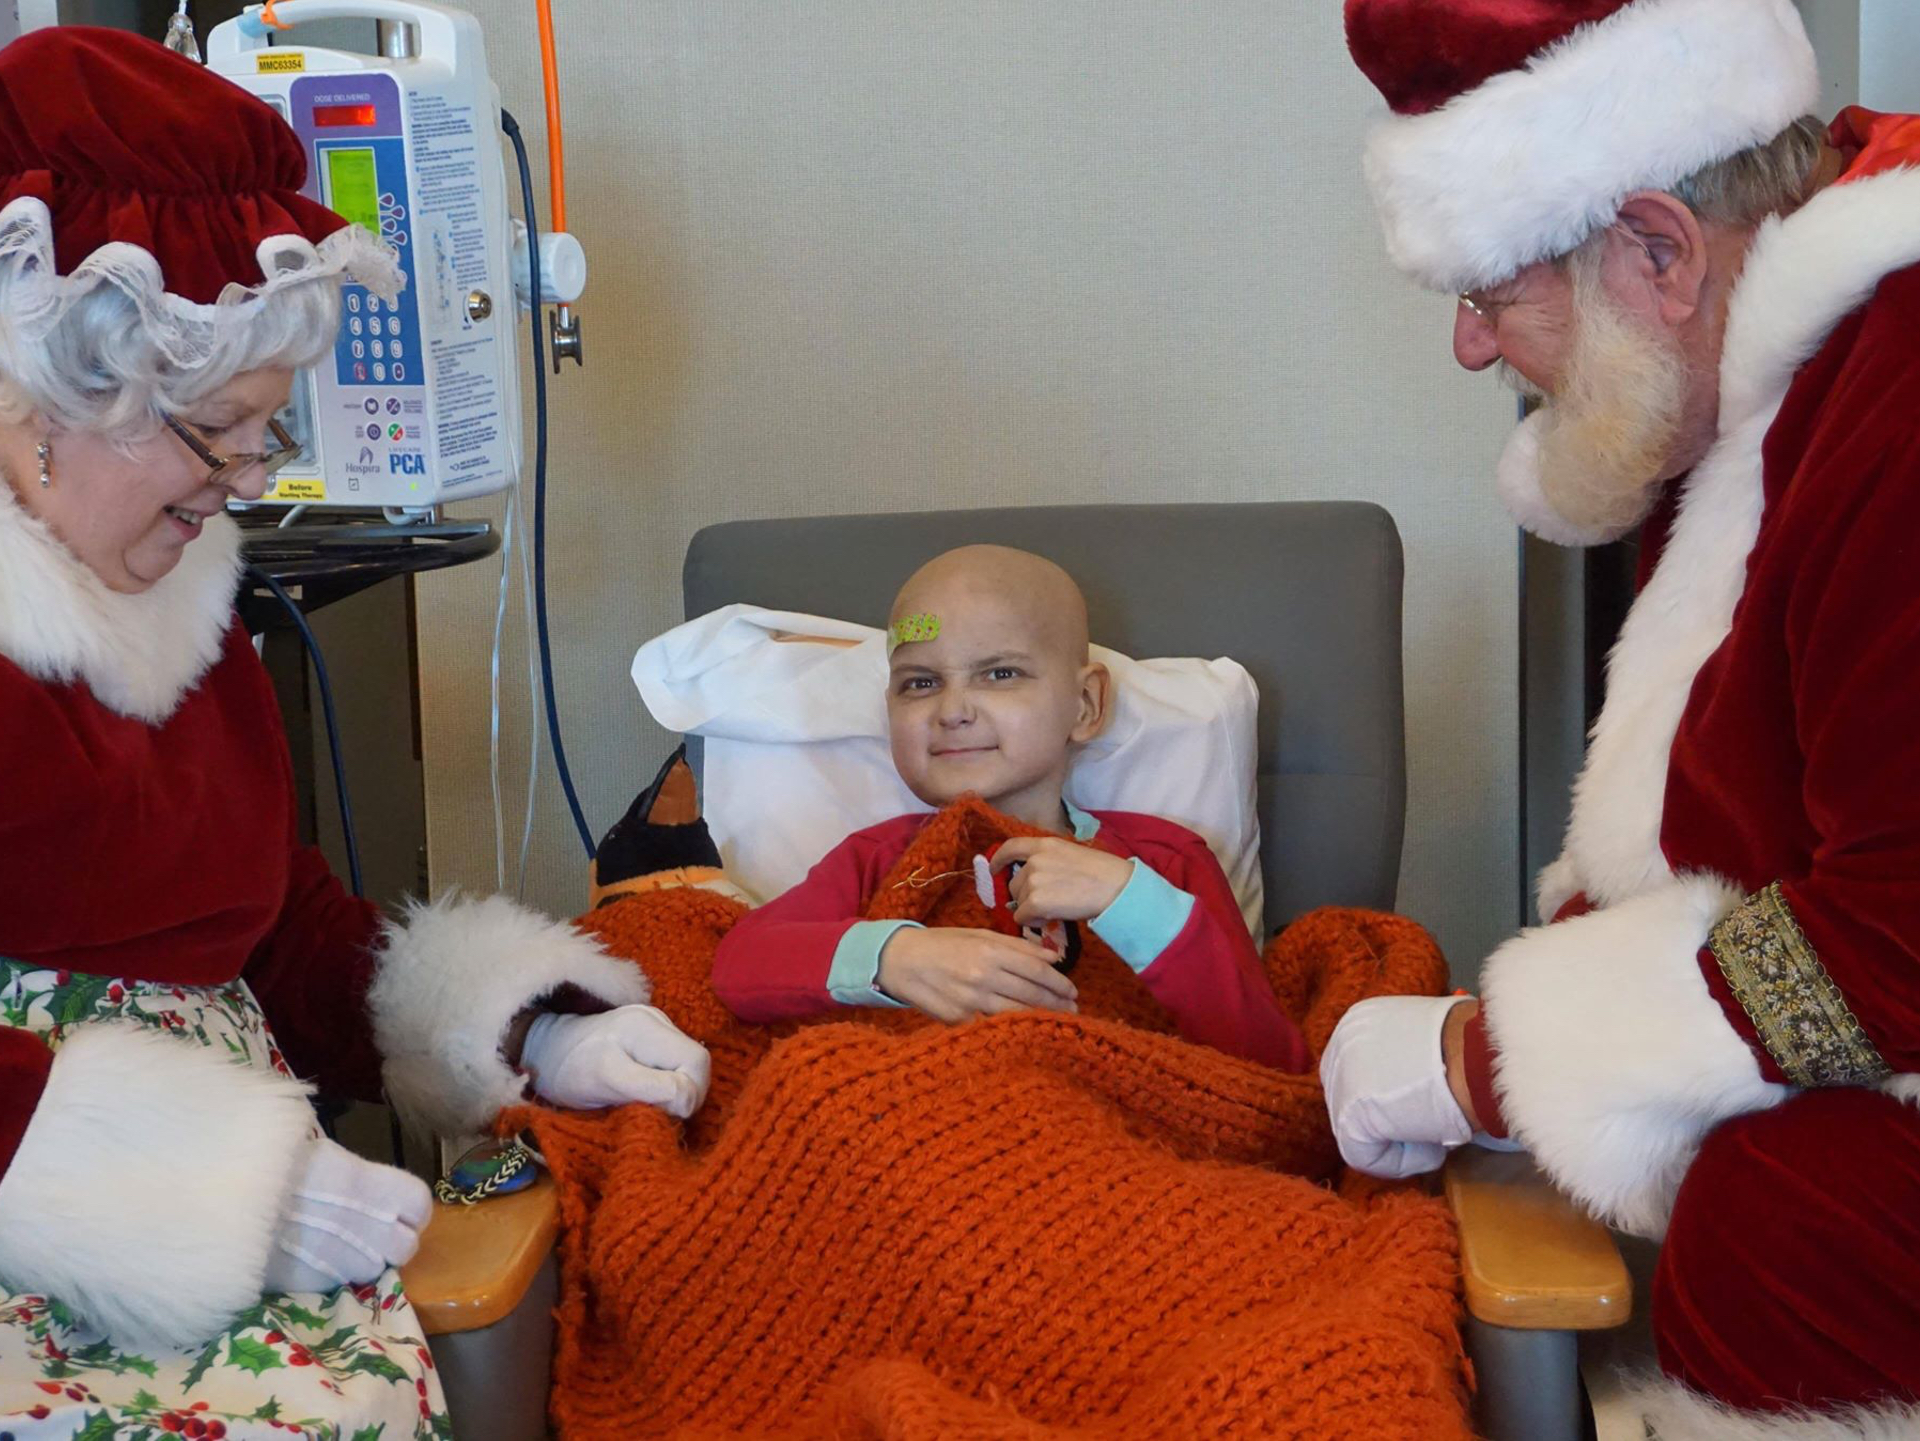 Boy Who Wished for Early Christmas Cards Dies of Cancer